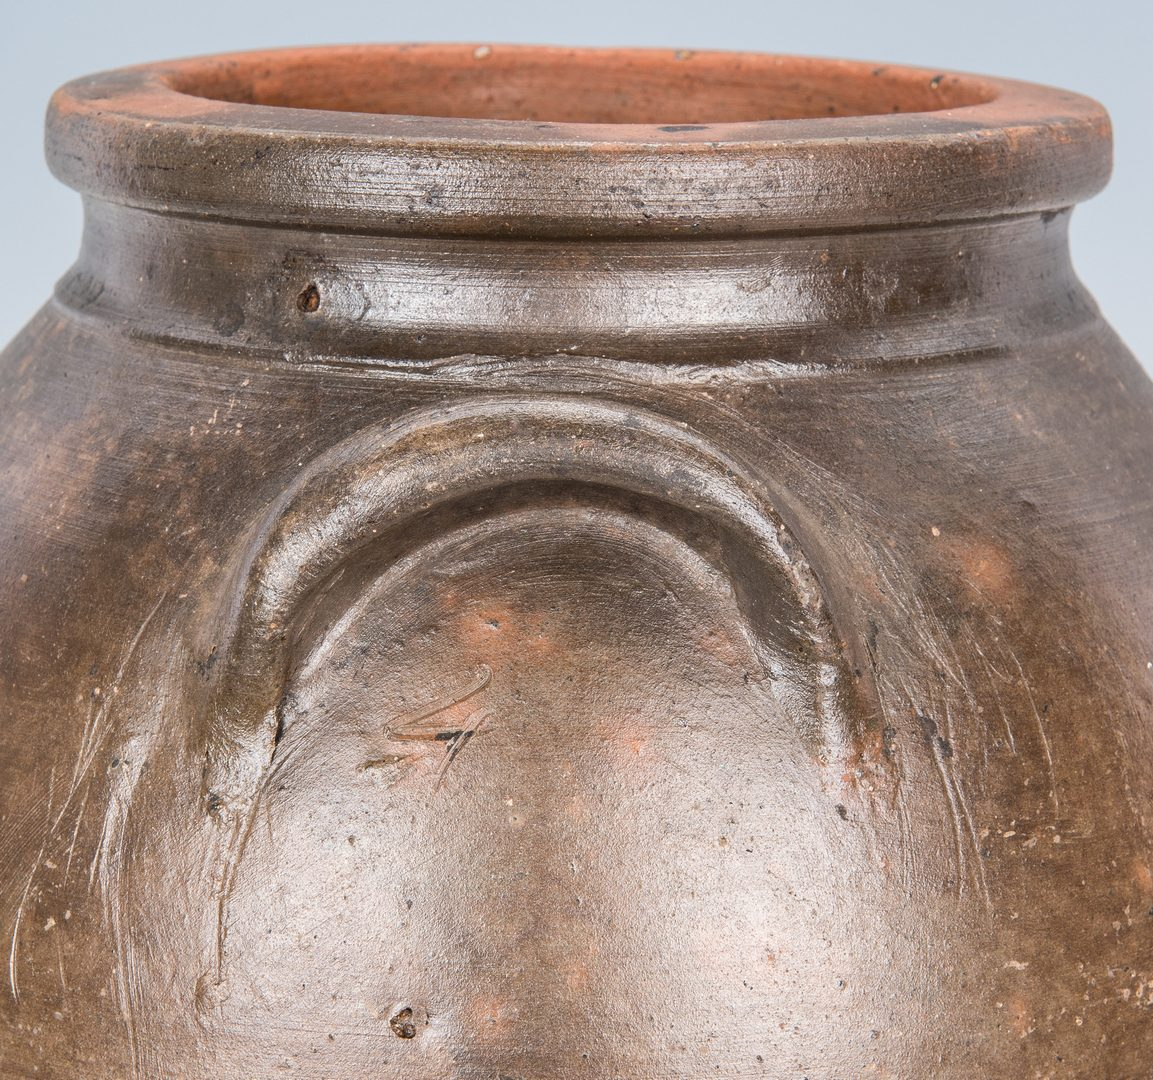 Lot 143: 2 East TN Stoneware Pottery Jars, 1 exhibited